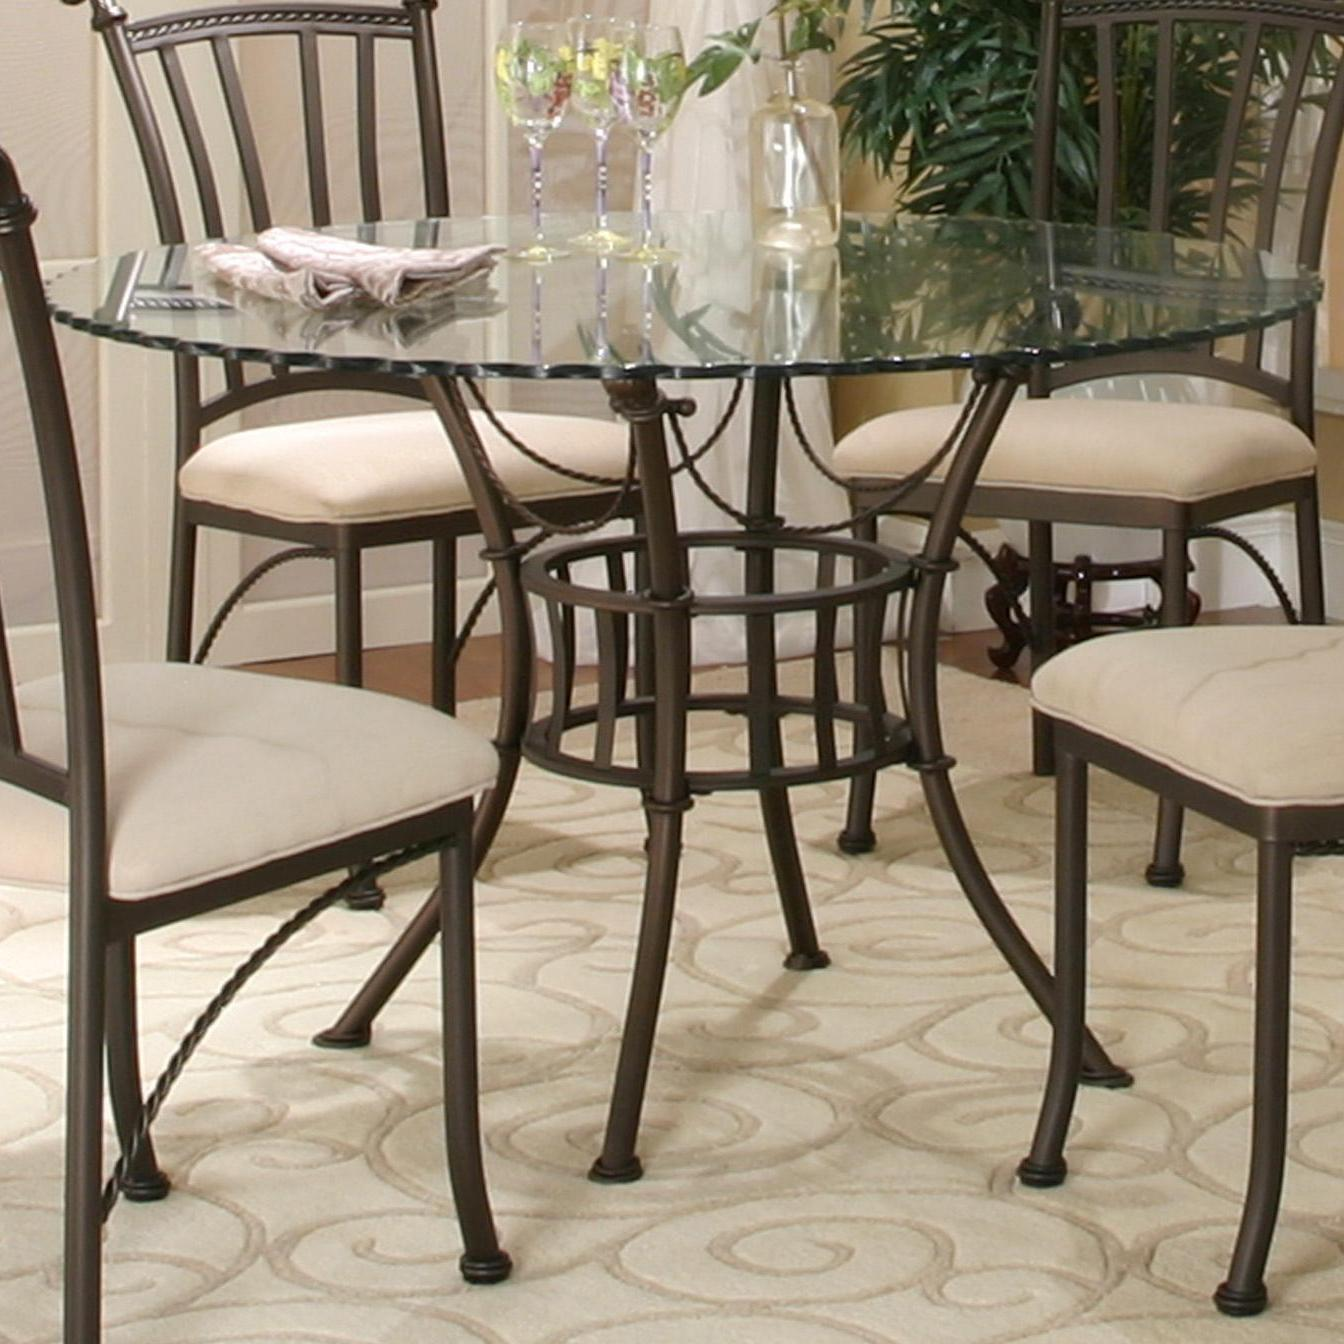 Cramco Inc Denali Round Glass Table Top With Molten Earth Base Value City Furniture Dining Room Table